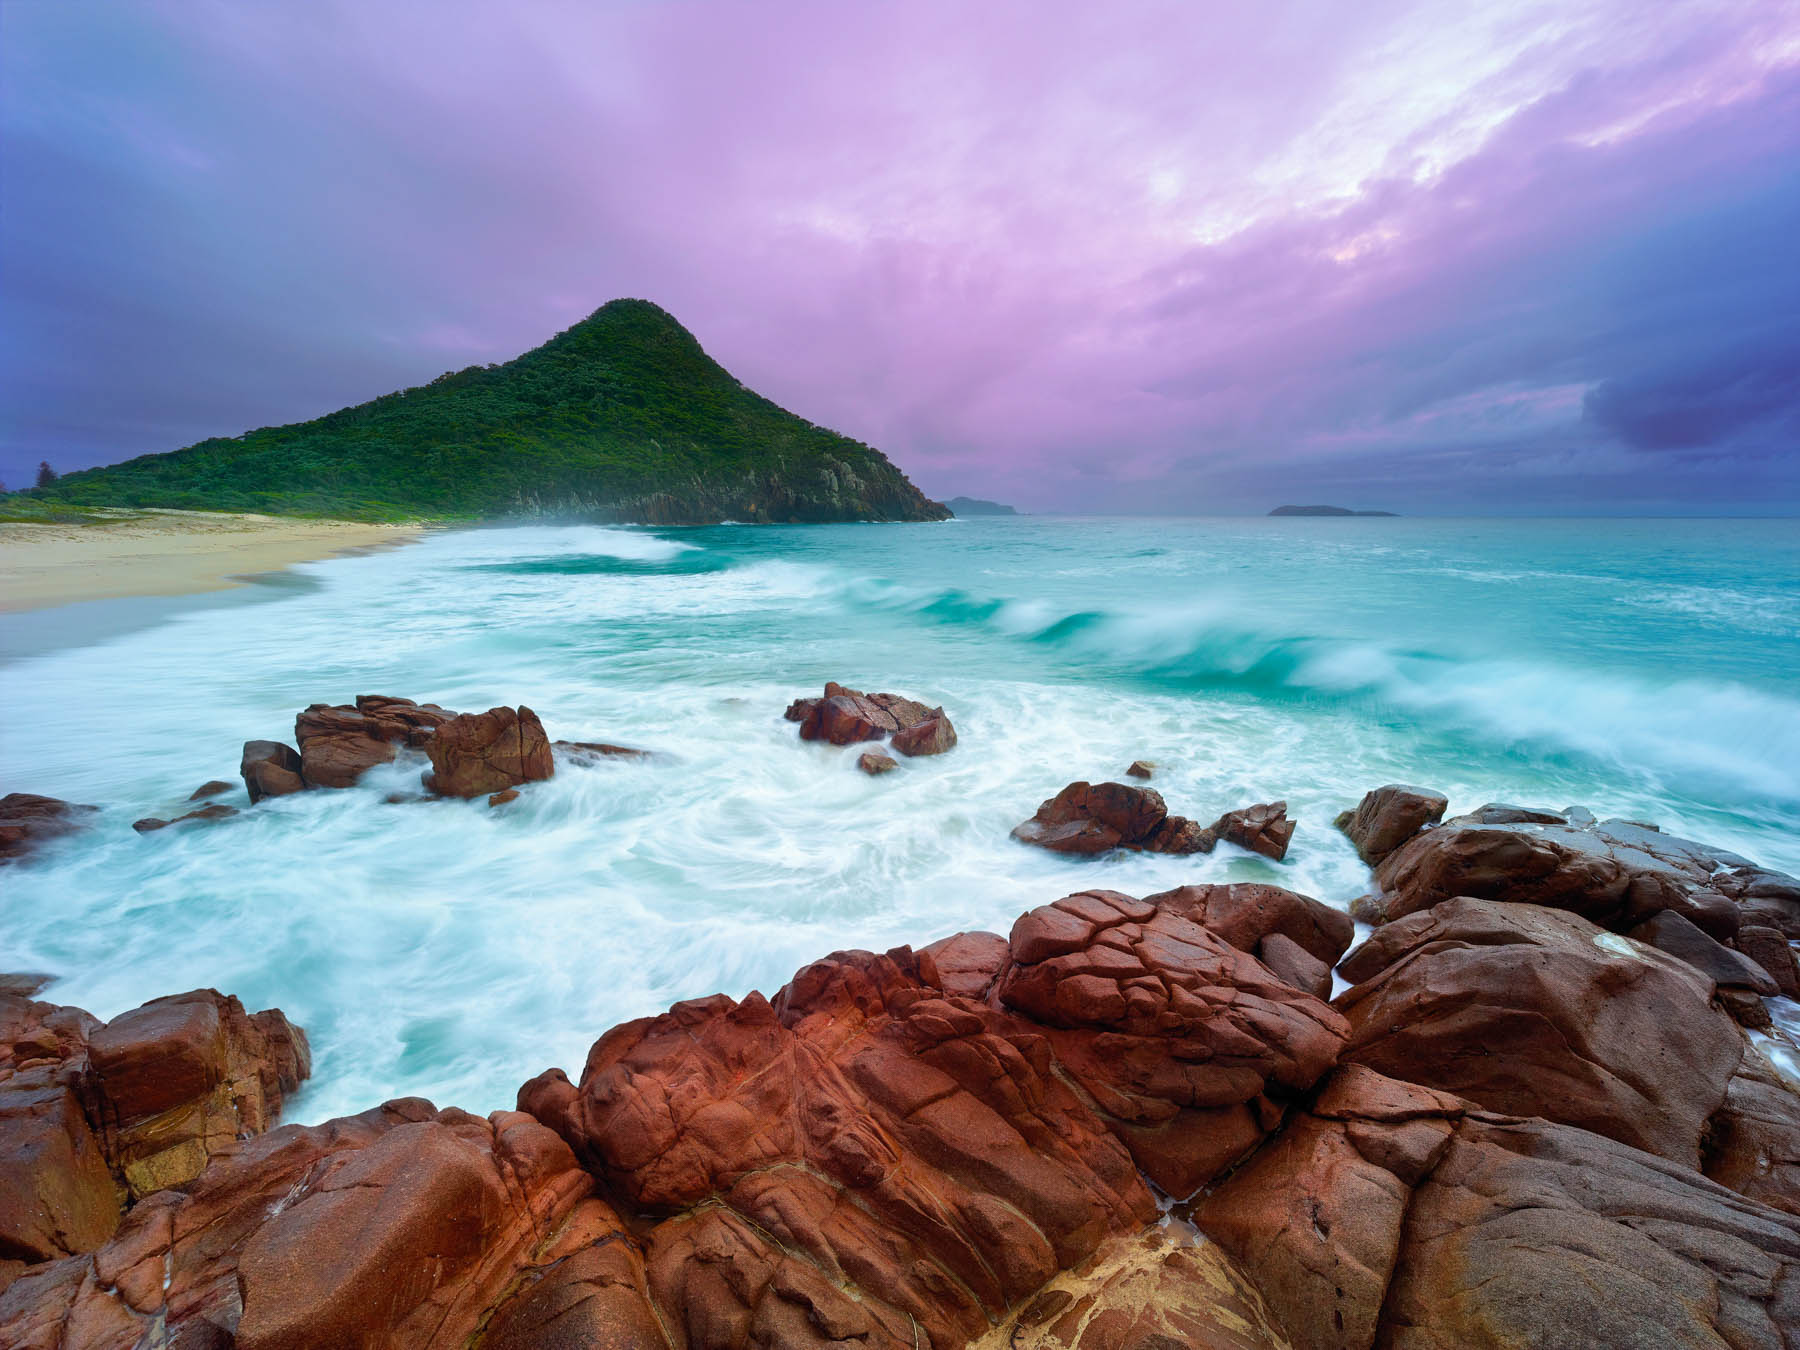 A stormy afternoon at Zenith Beach, Port Stephens, NSW, Australia.